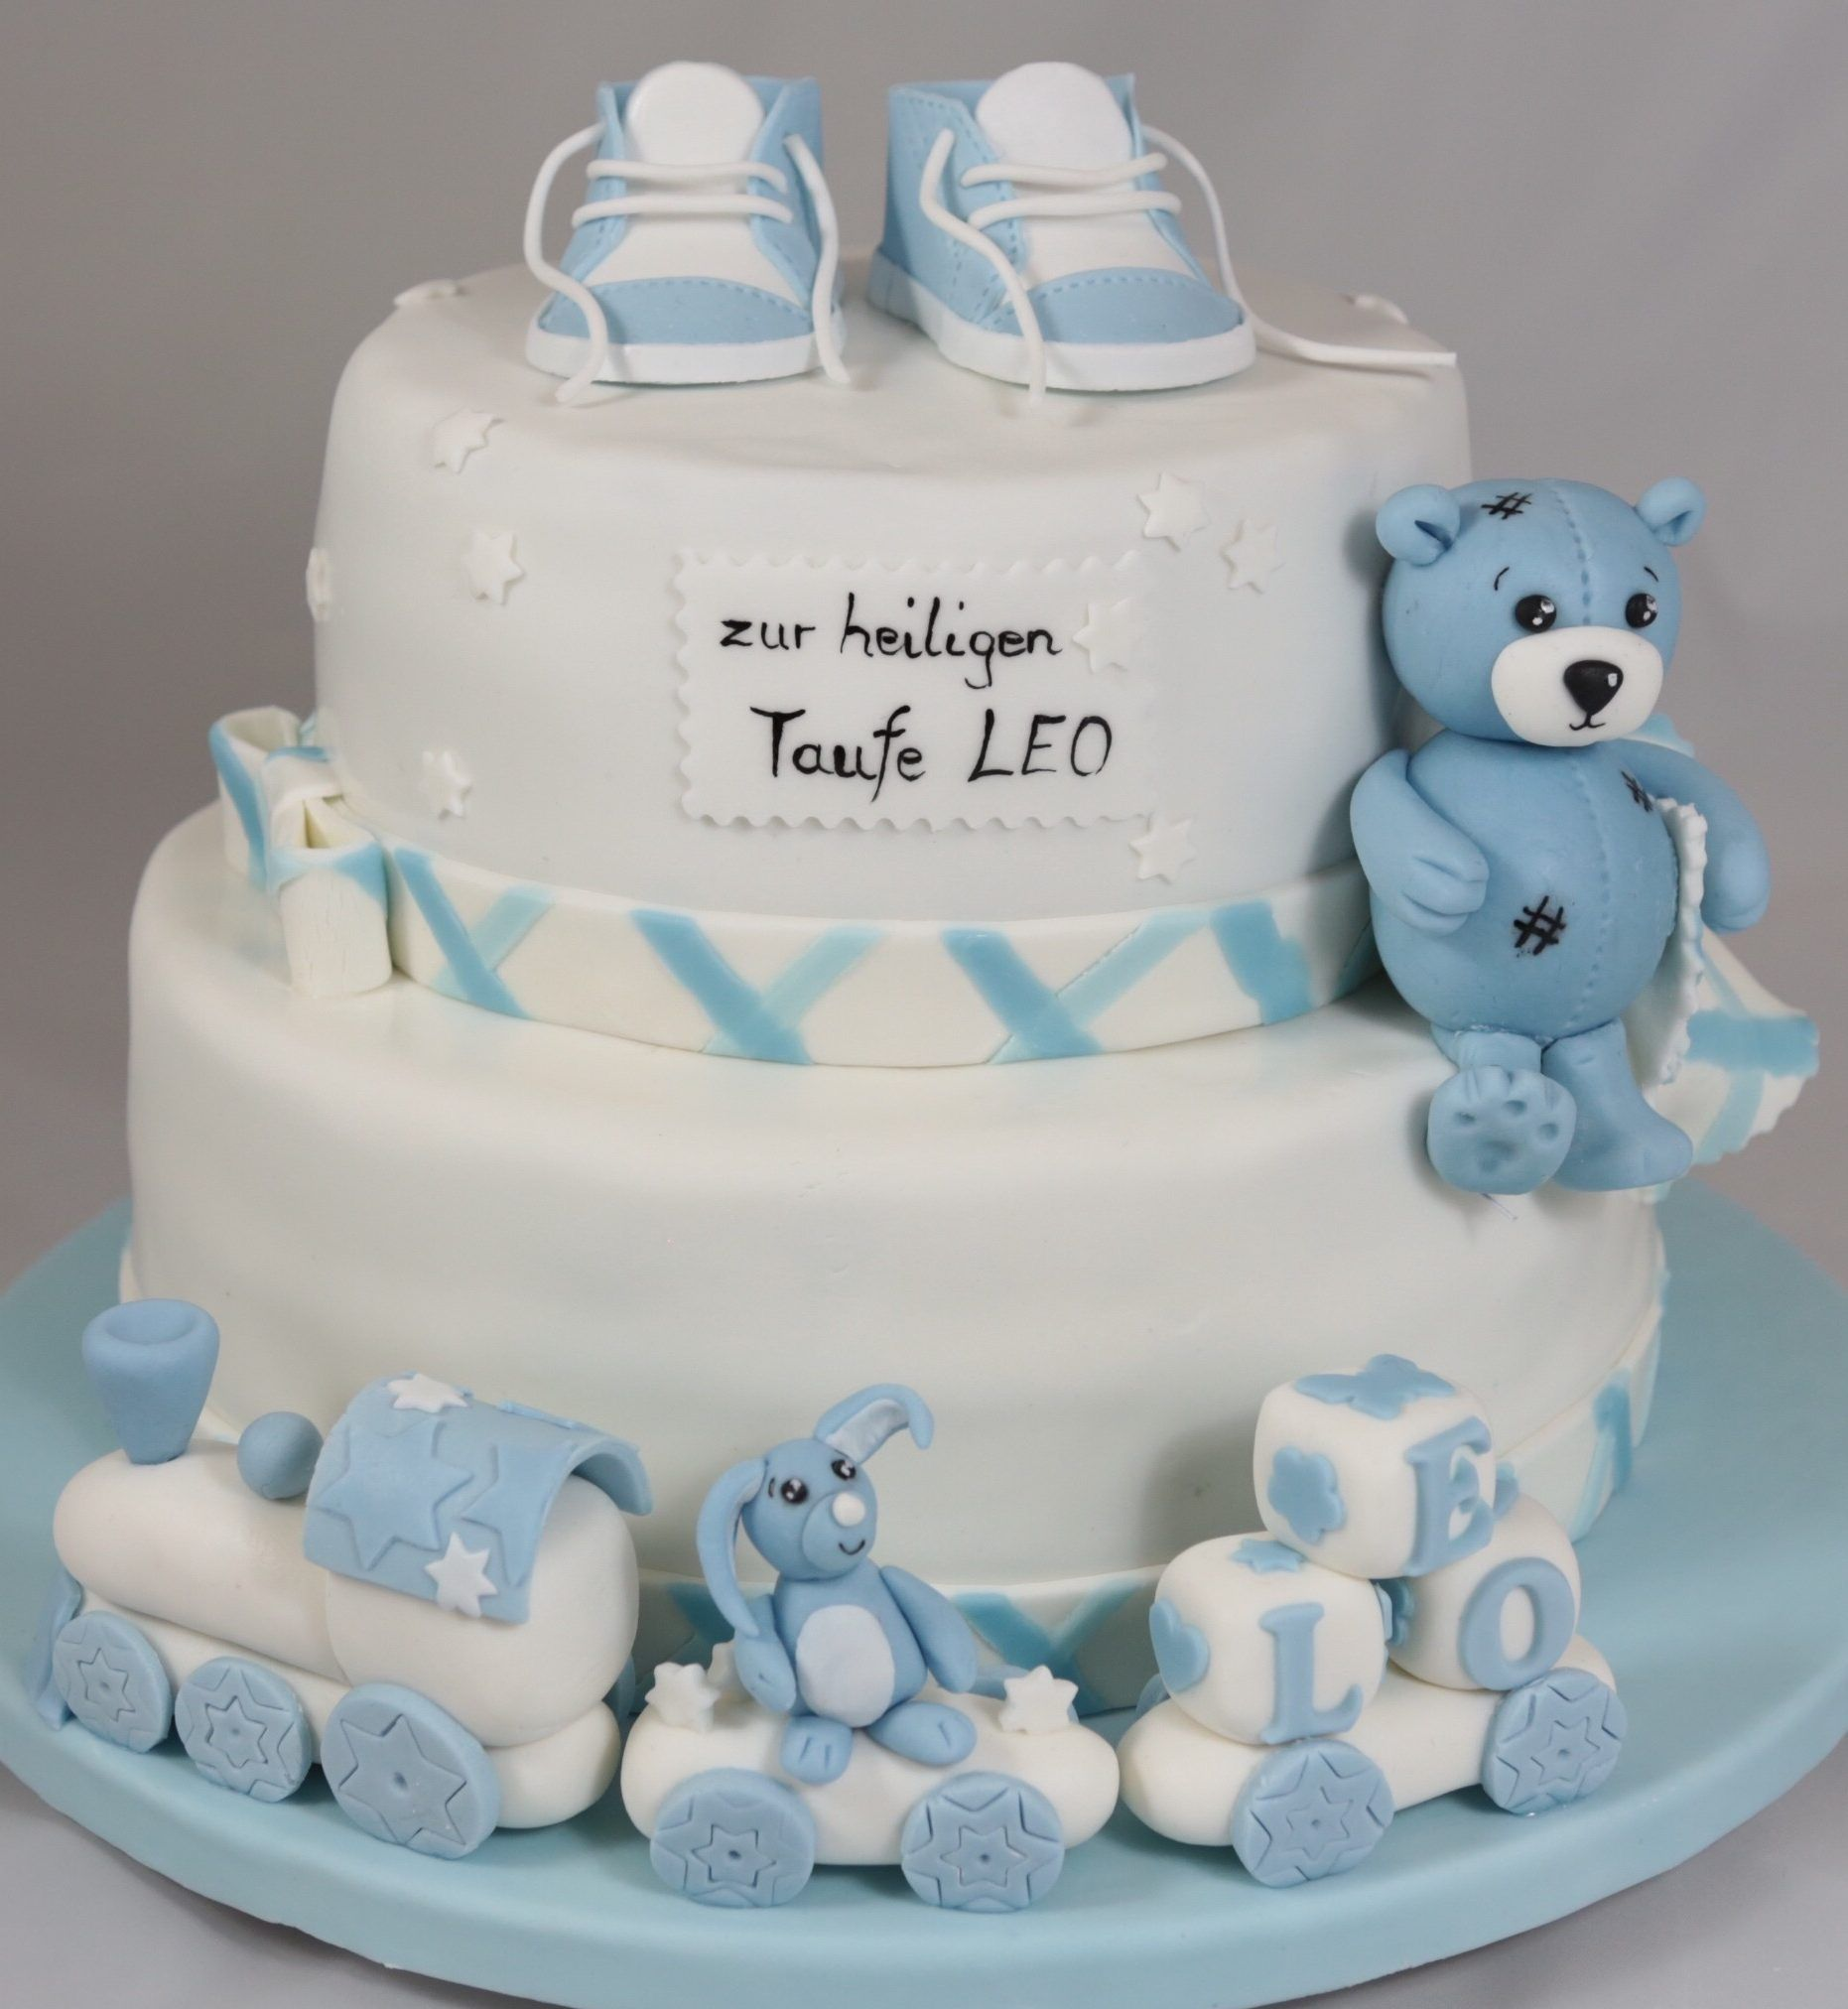 baby baptism cake torte bub taufe torten pinterest tauftorten torten und tauftorte junge. Black Bedroom Furniture Sets. Home Design Ideas